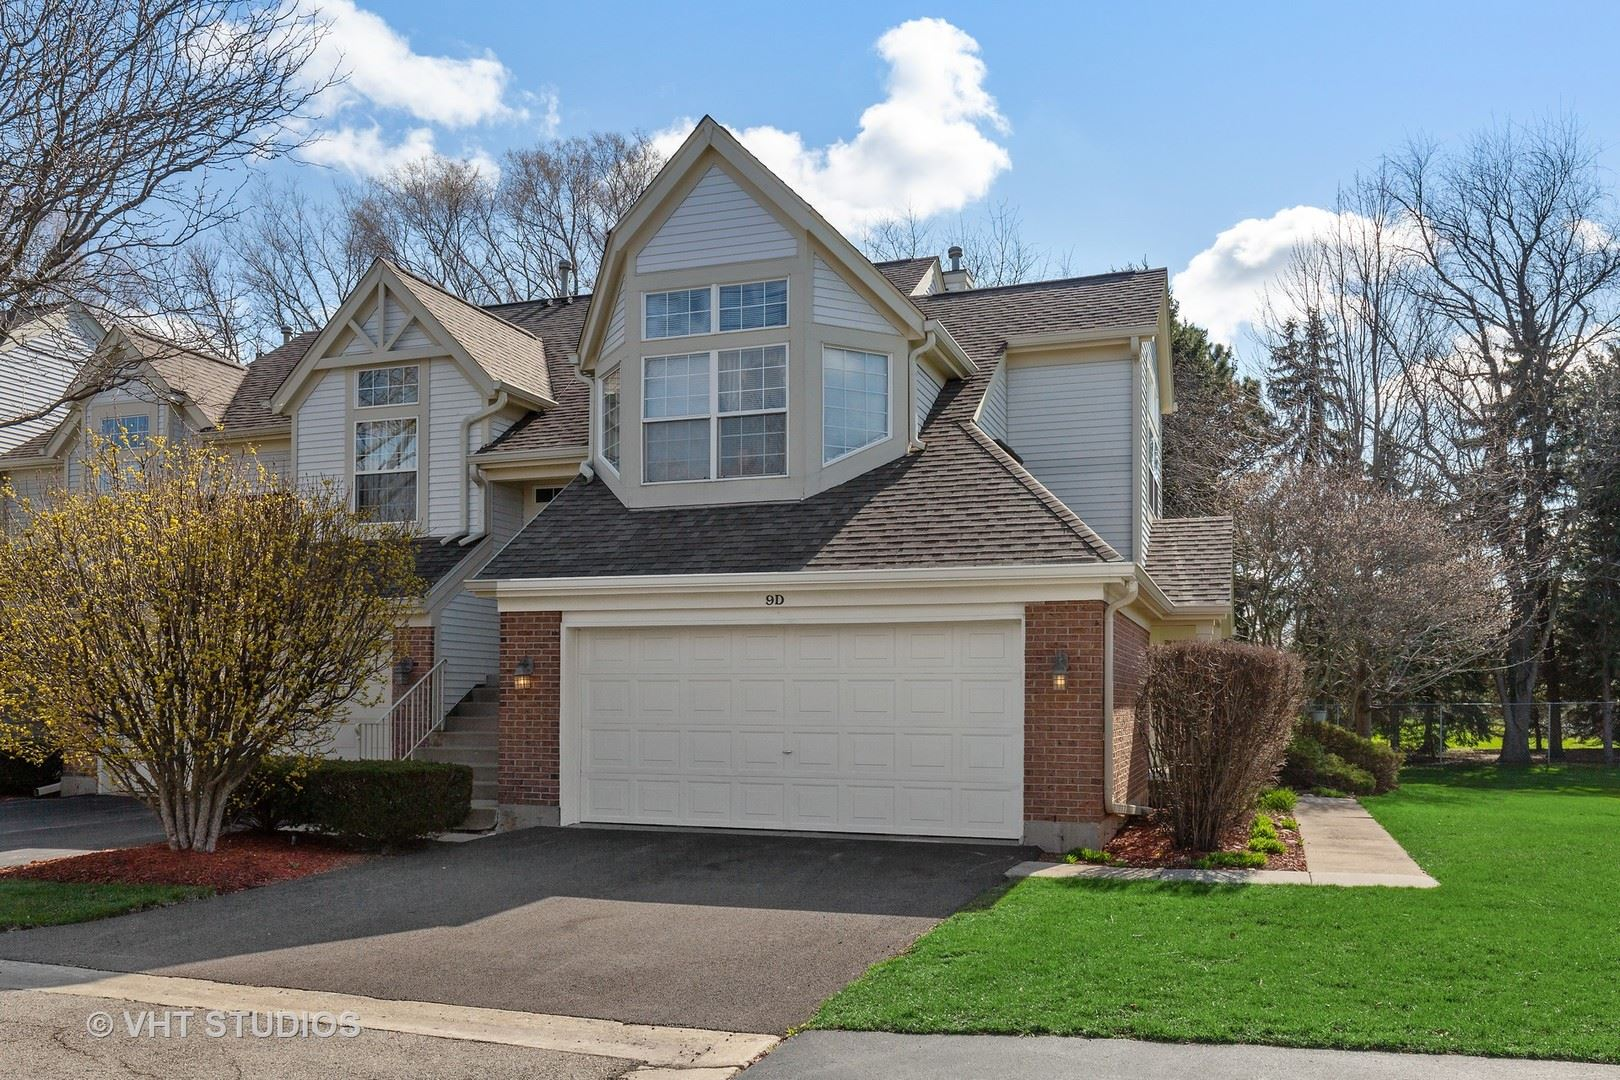 9 Ione Drive #D, South Elgin, IL 60177 - #: 10665546